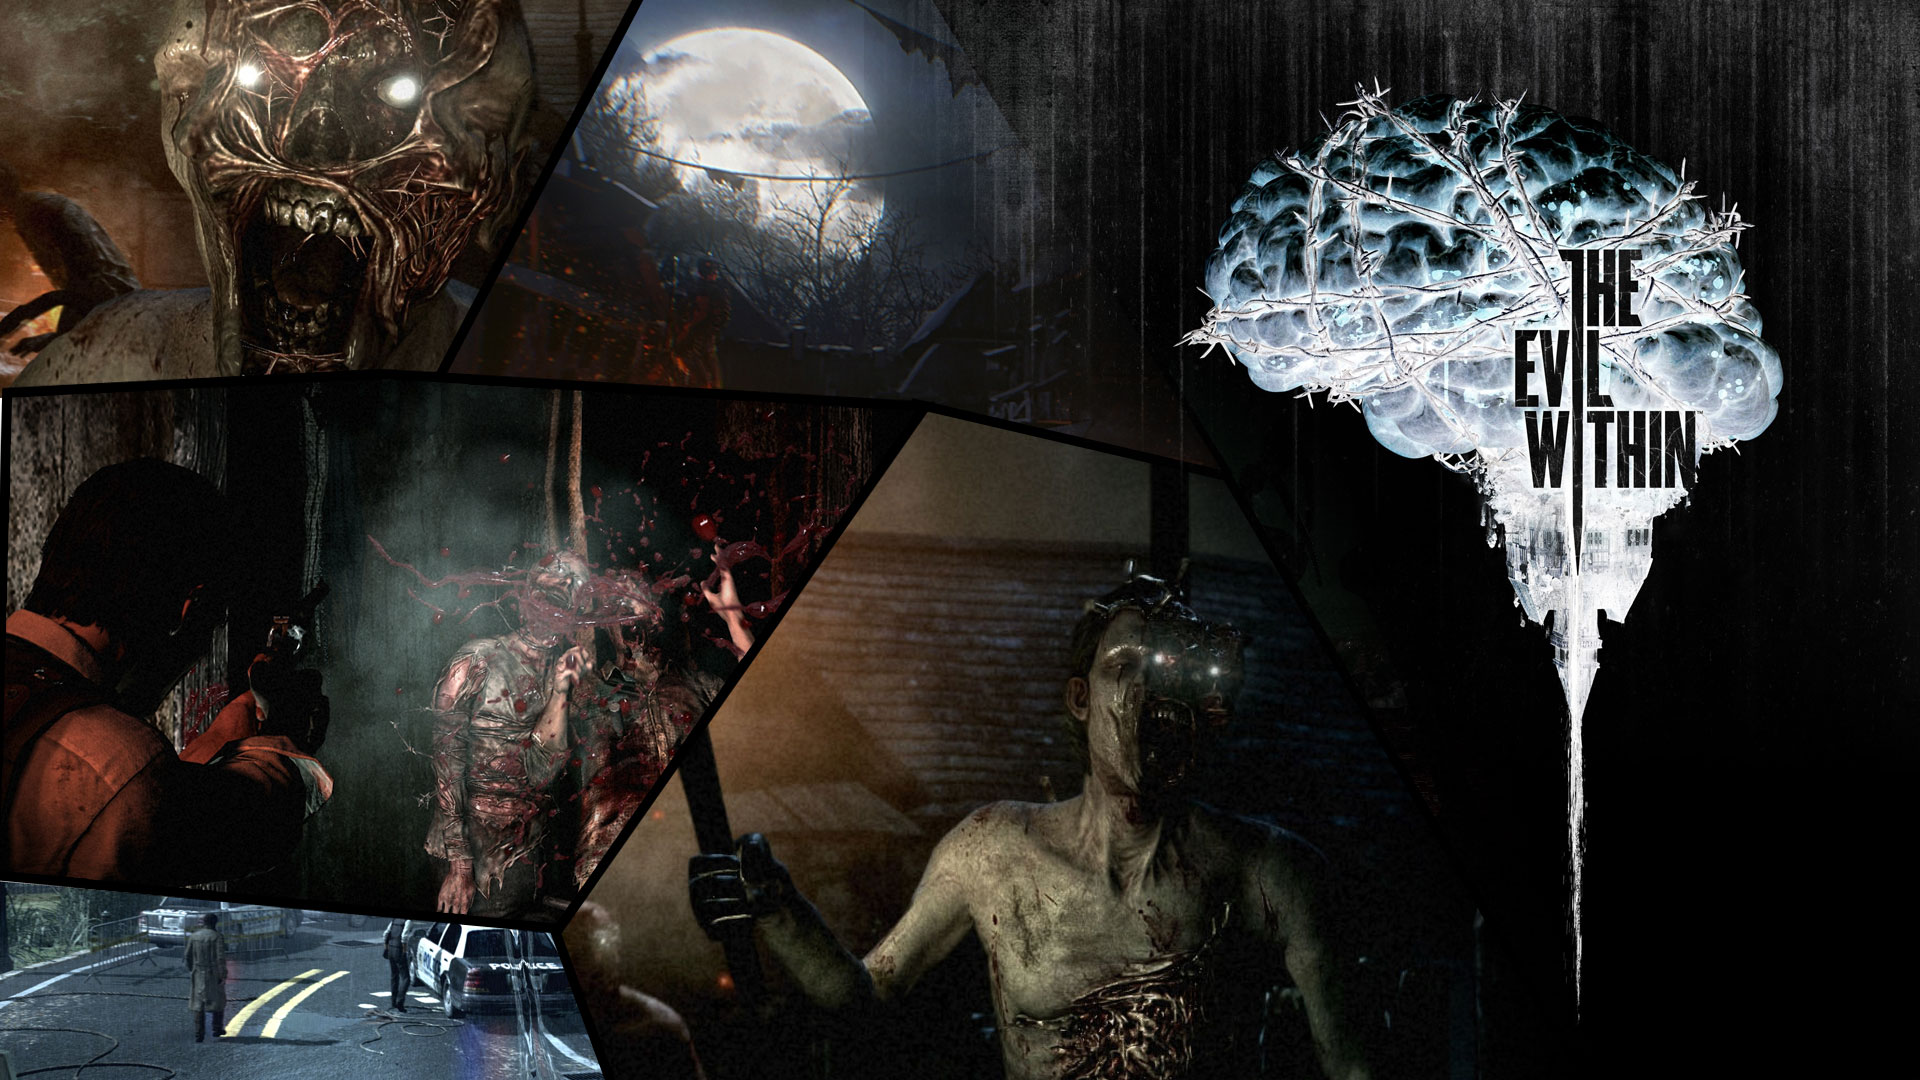 The Evil Within wallpaper 3